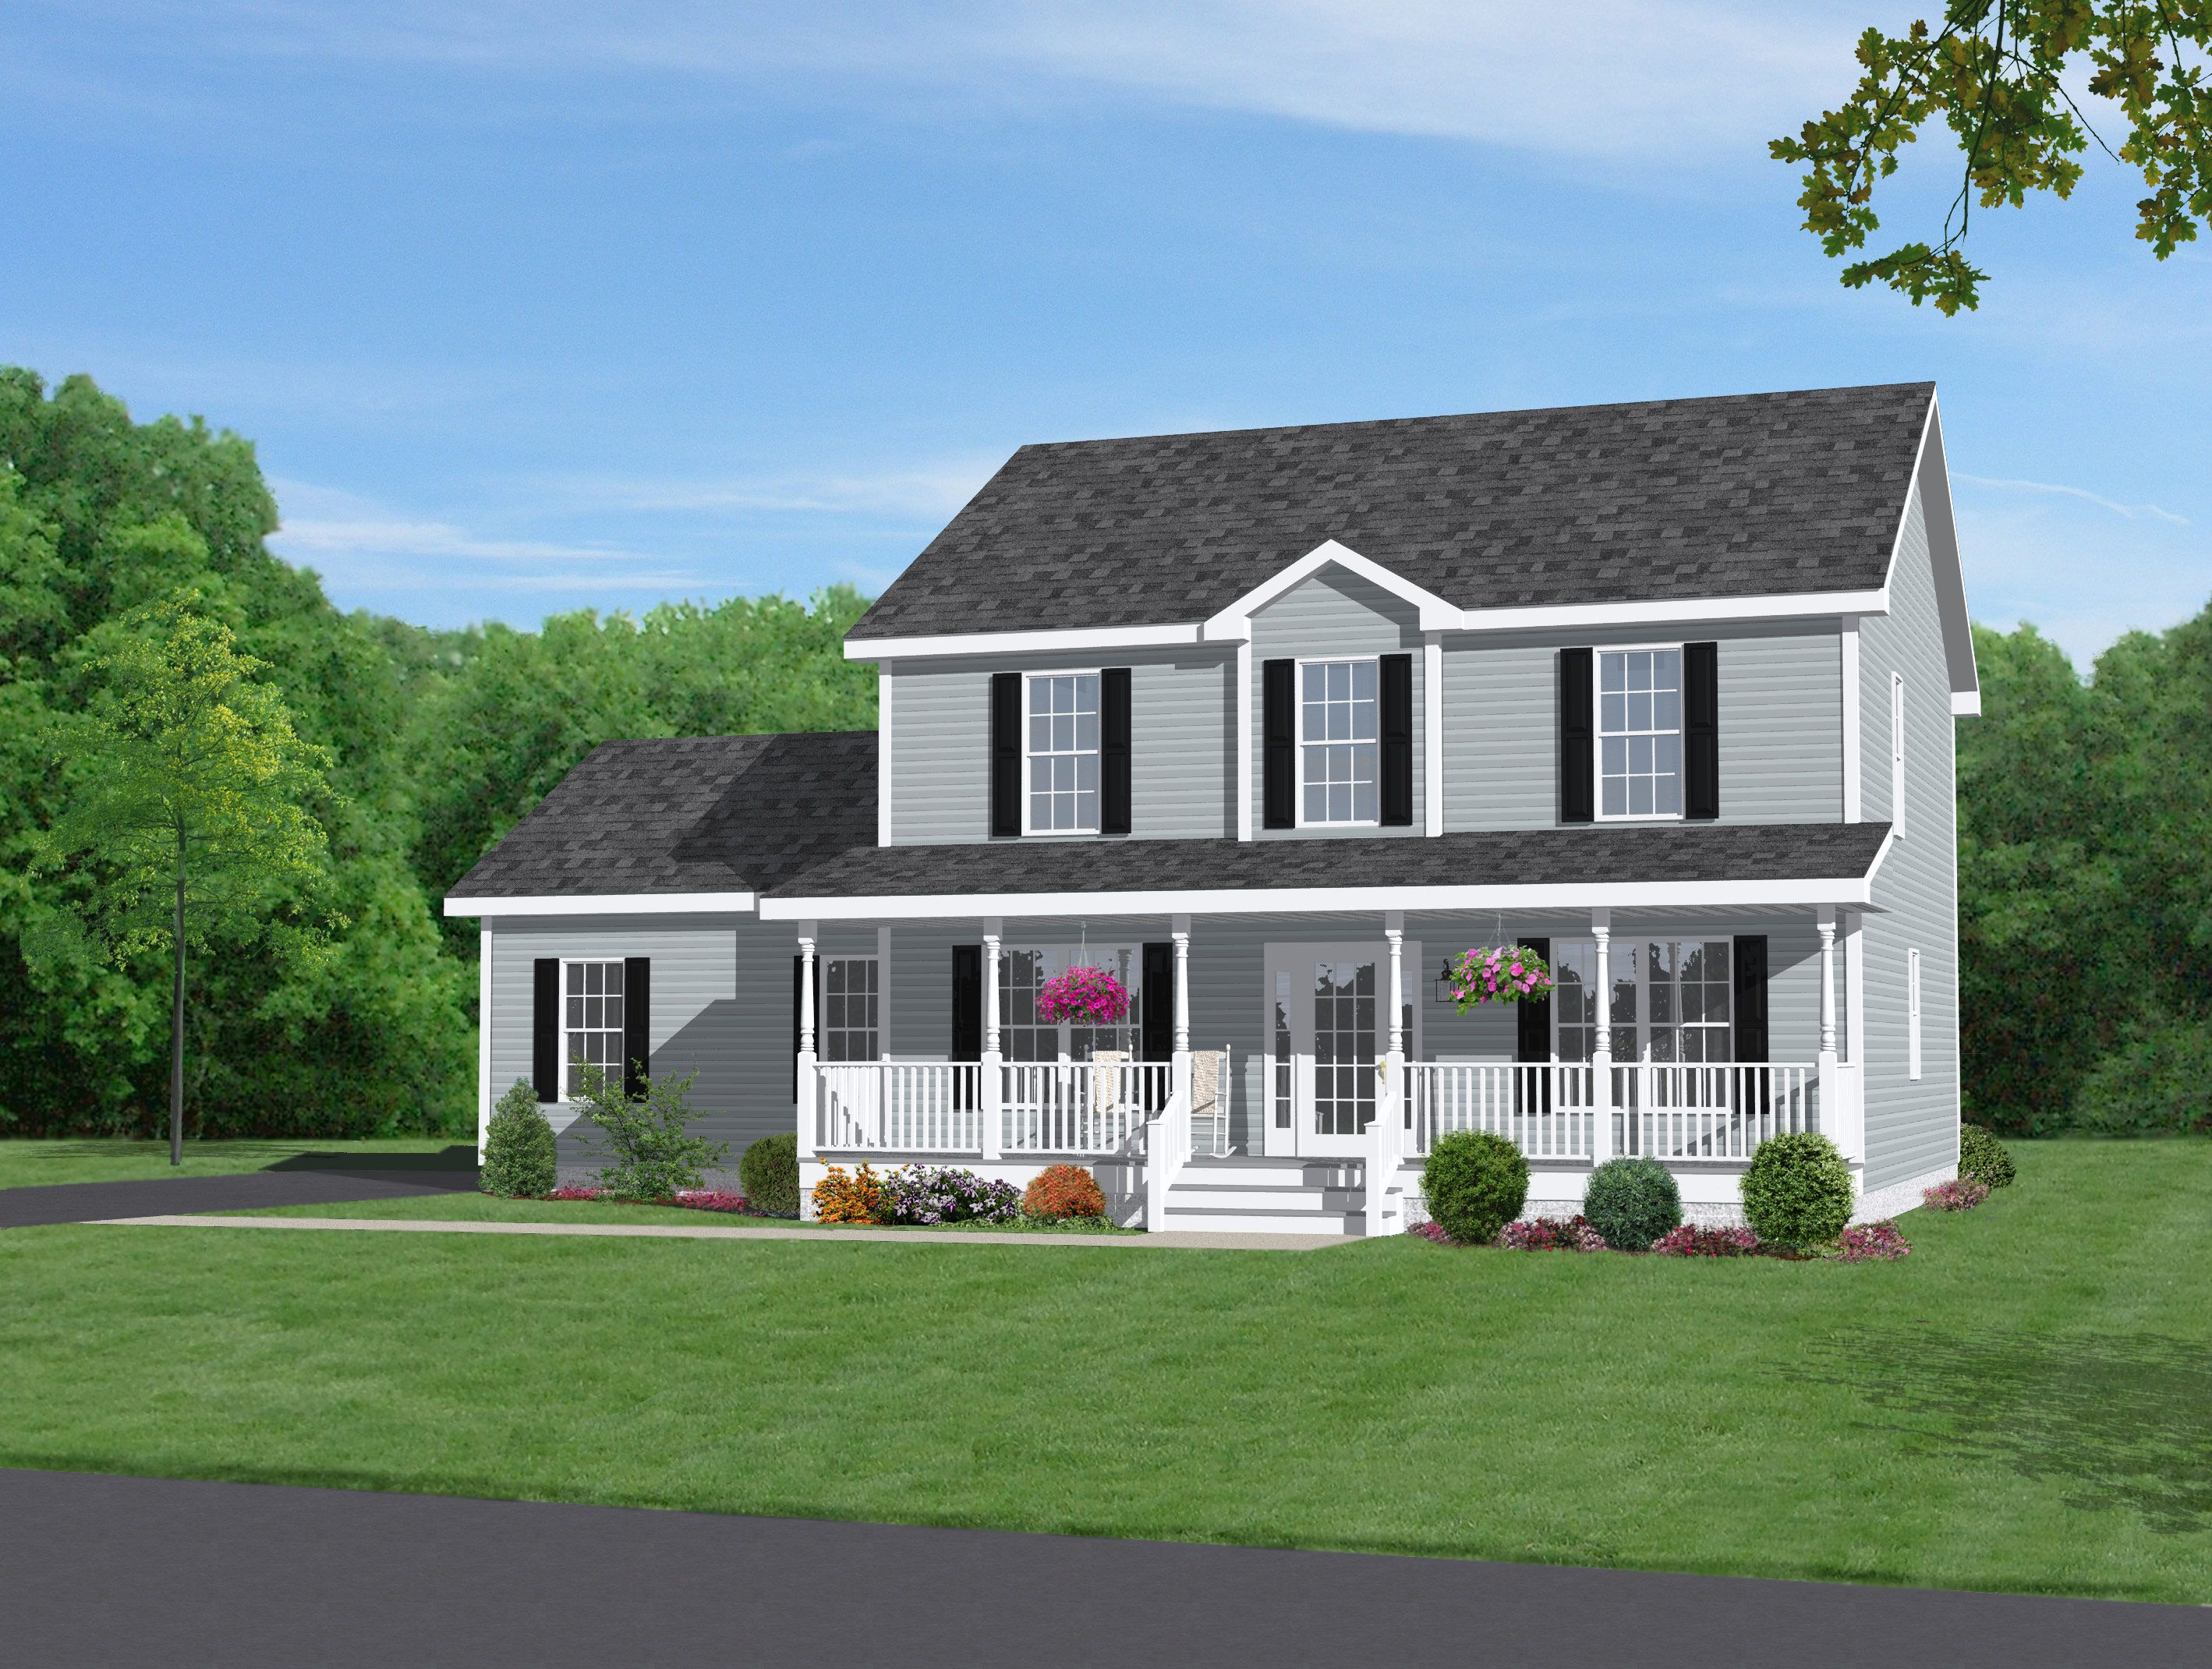 Two story home with beautiful front porch dream home for Small 1 1 2 story house plans